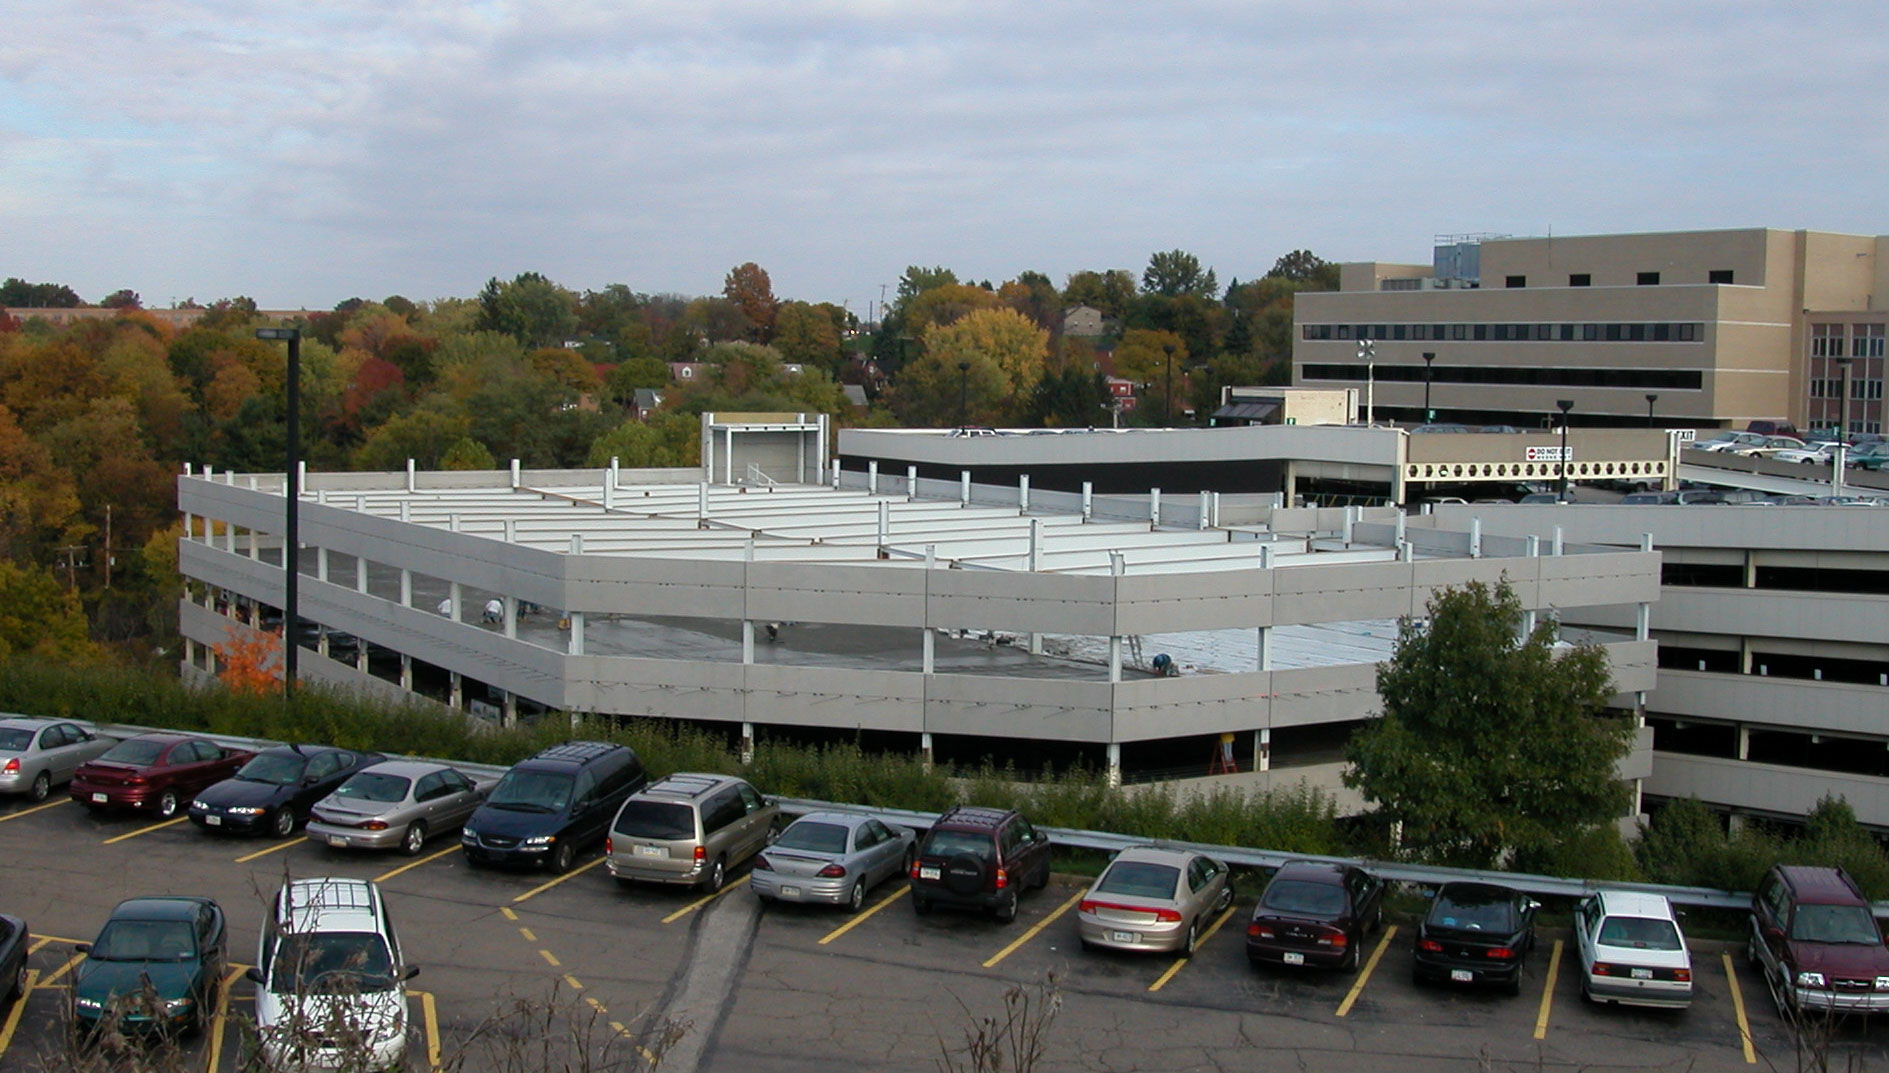 St. Clair Hospital Parking Garage